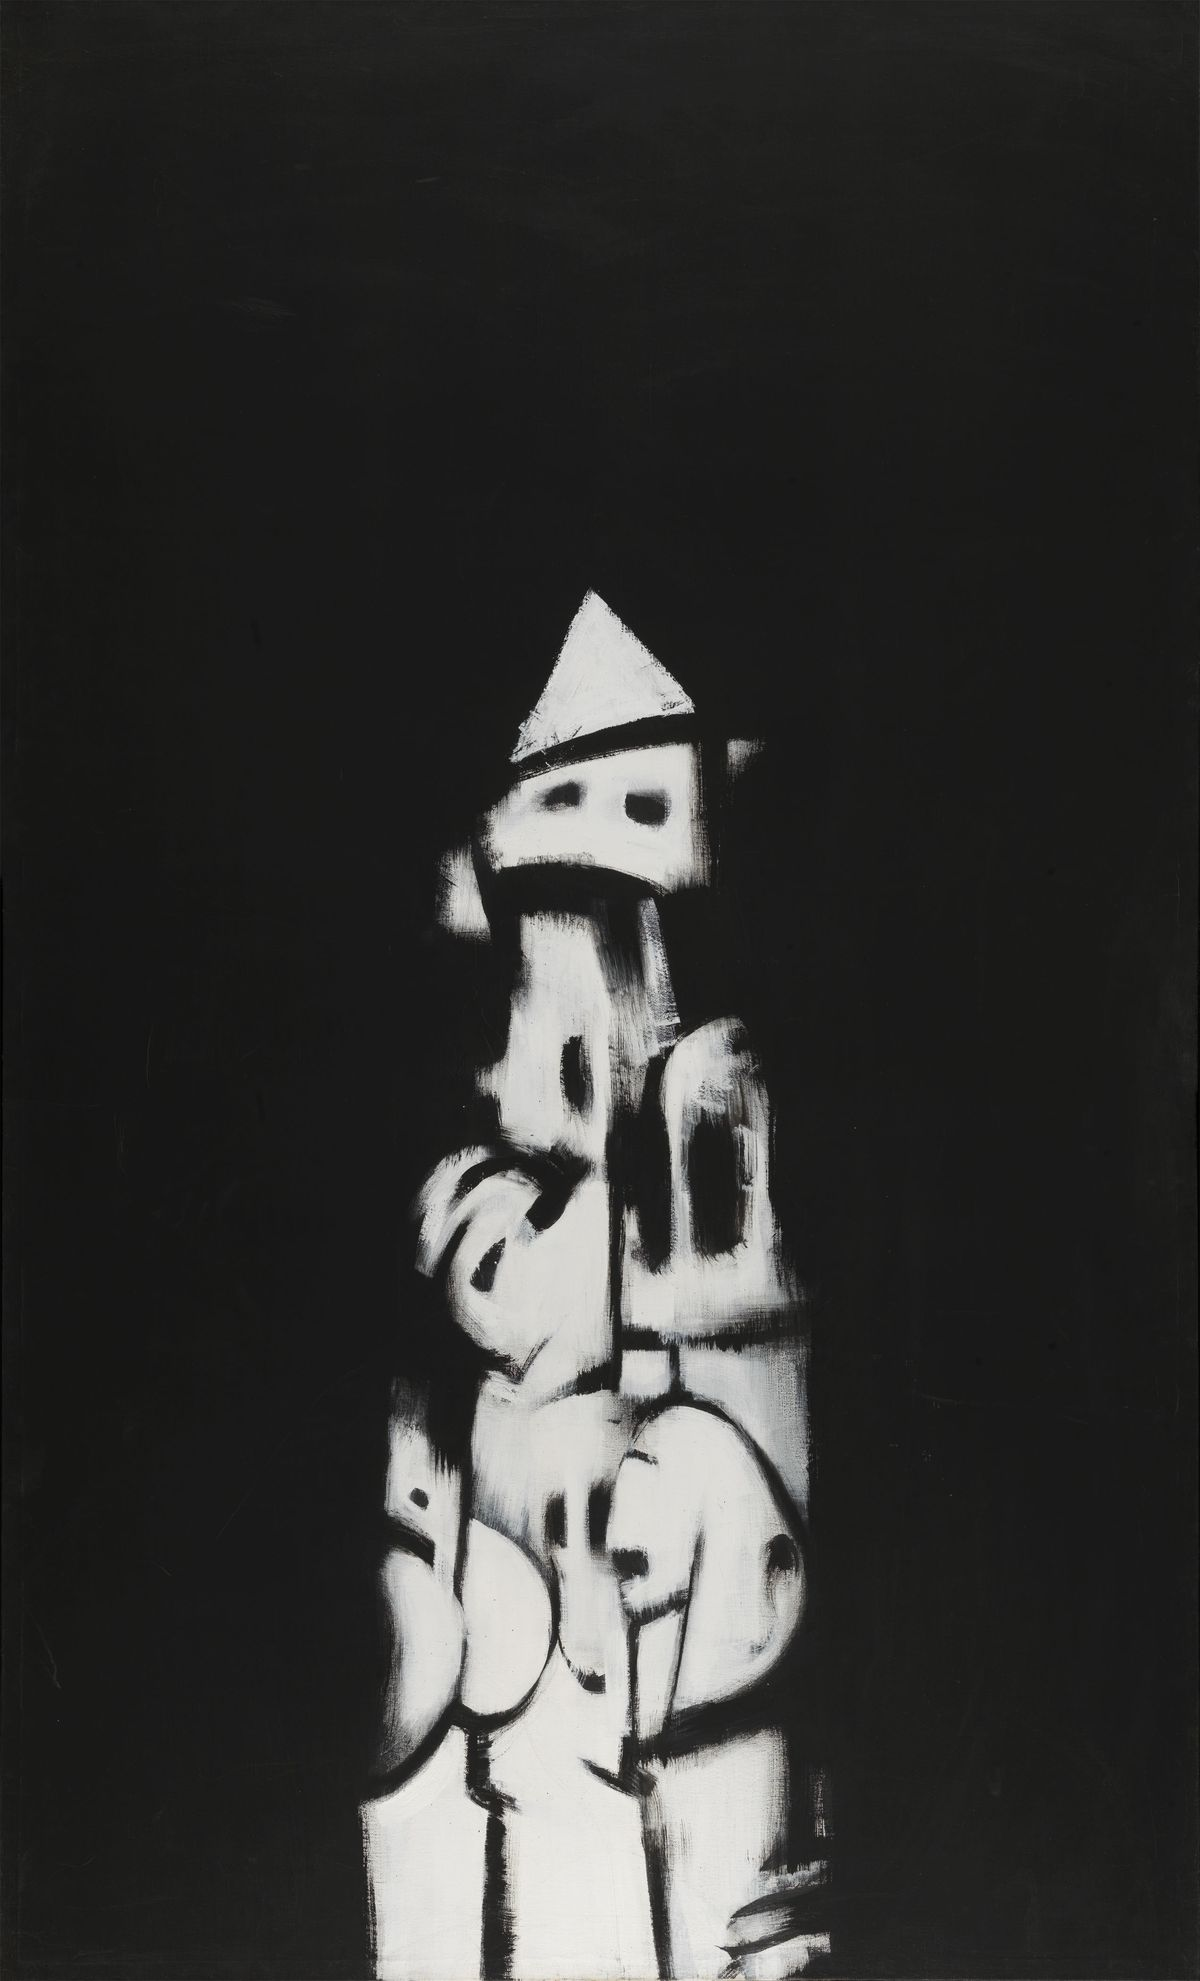 """The Ku Klux Klan is referenced in Lewis' """"American Totem"""" from 1960